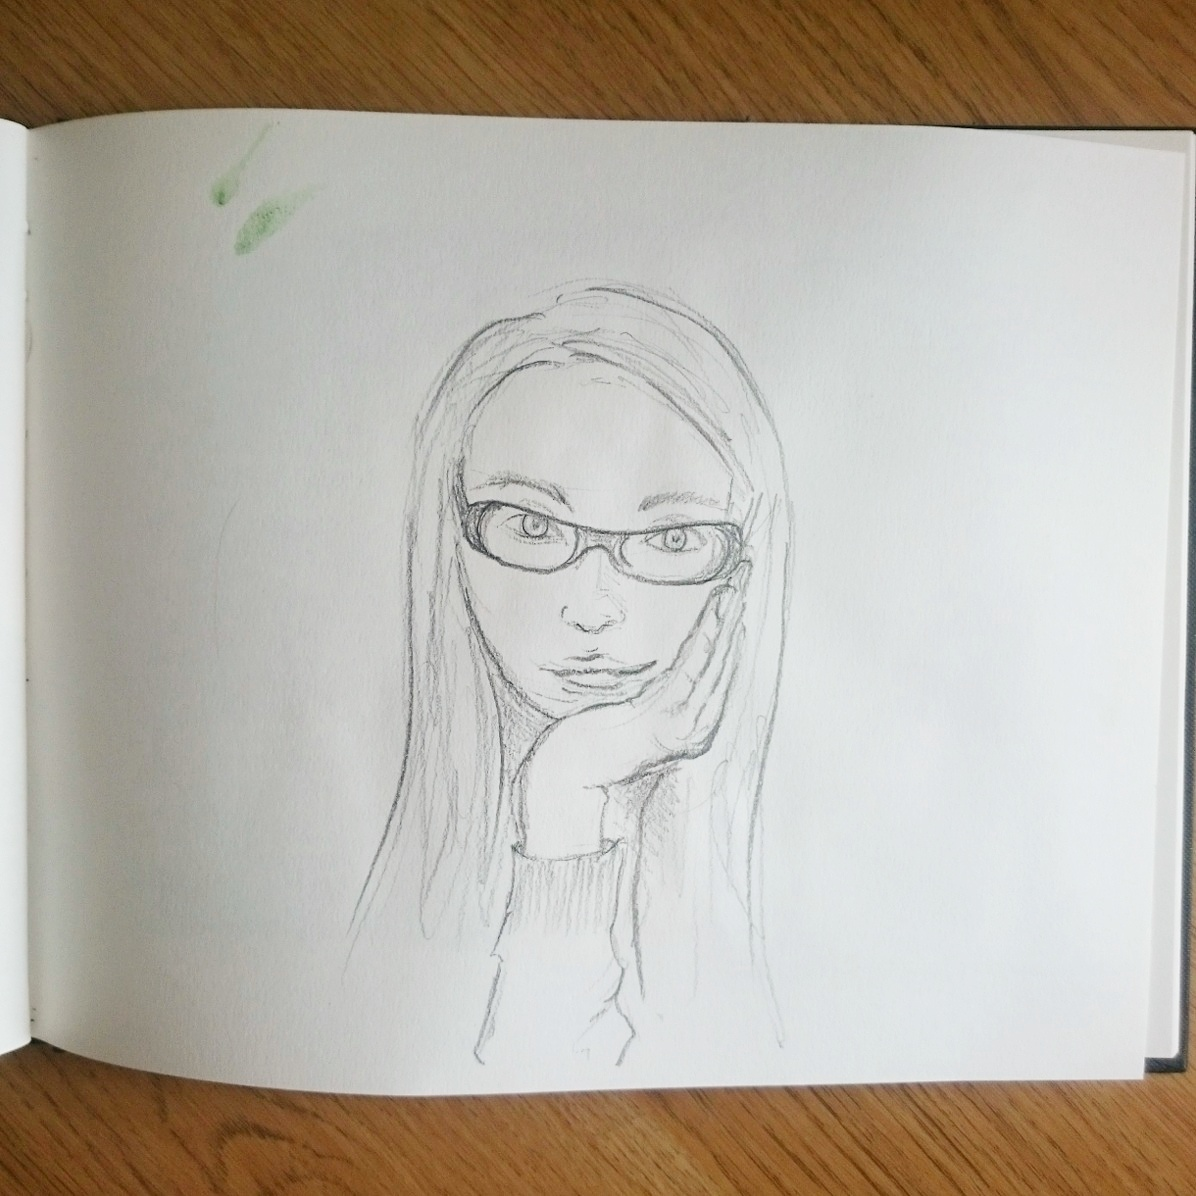 Day 16 28 Drawings Later Sketchbook Challenge by Jo Degenhart